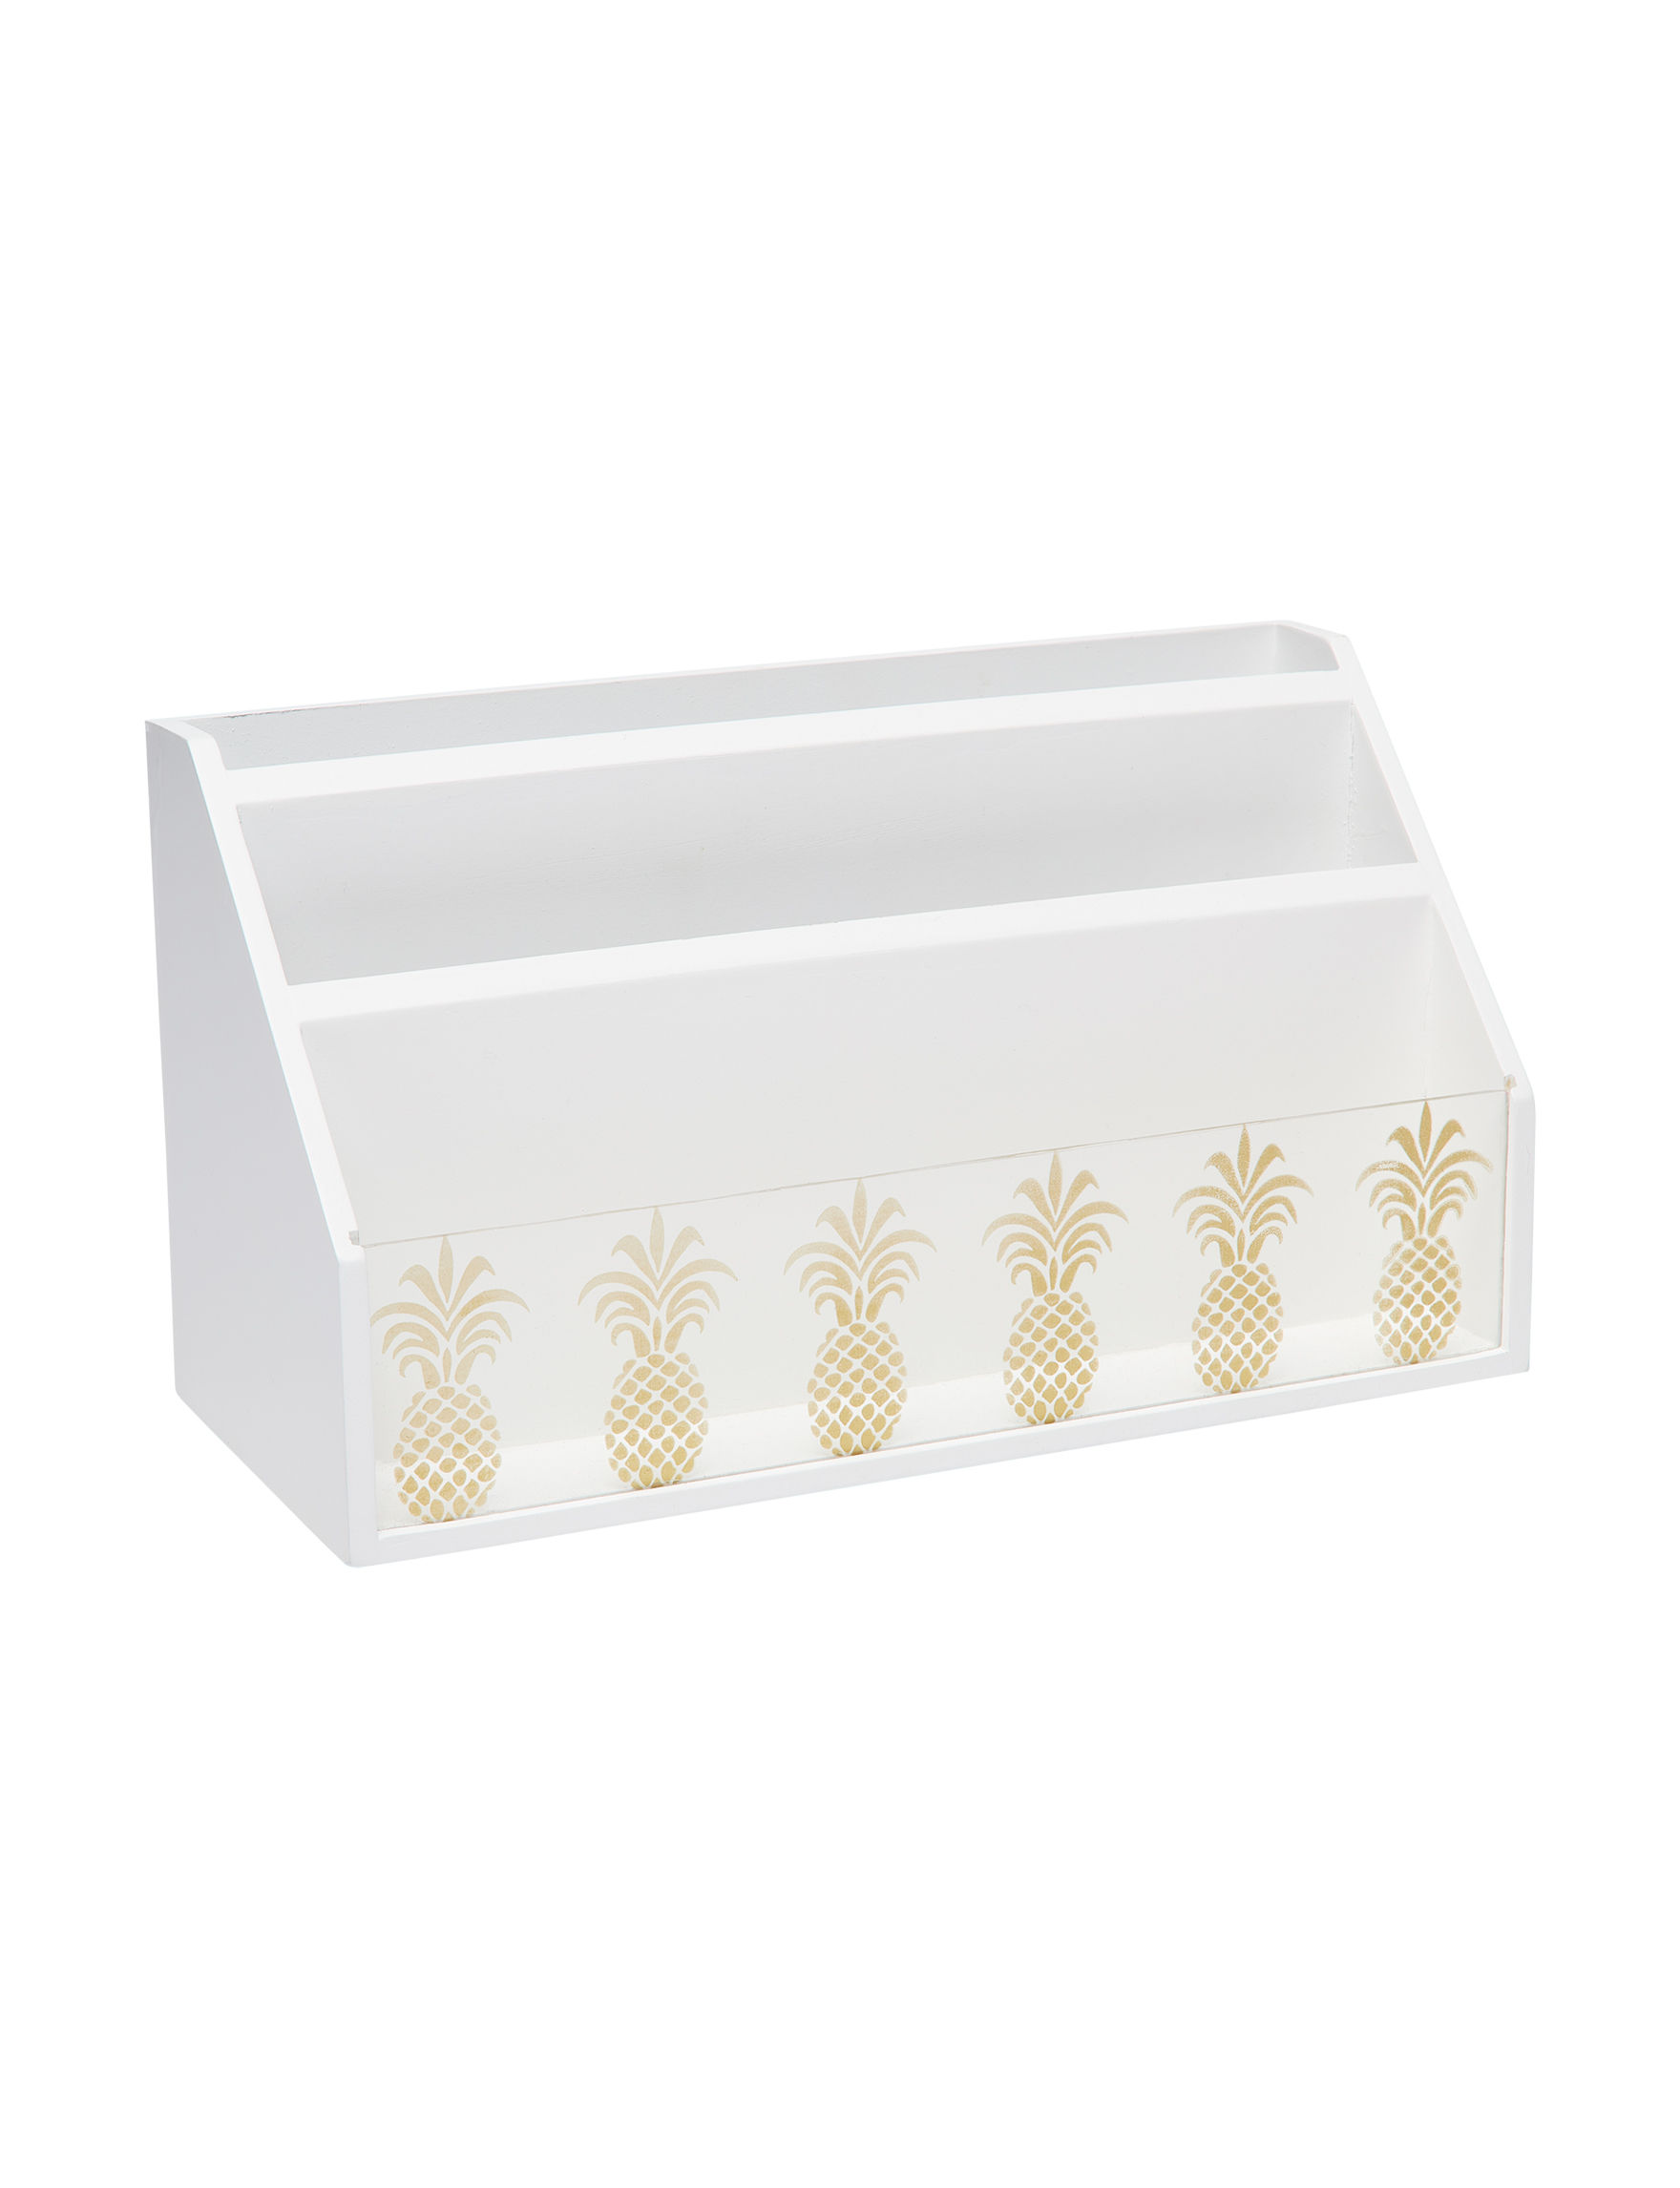 Home Essentials White Decorative Objects Home Accents